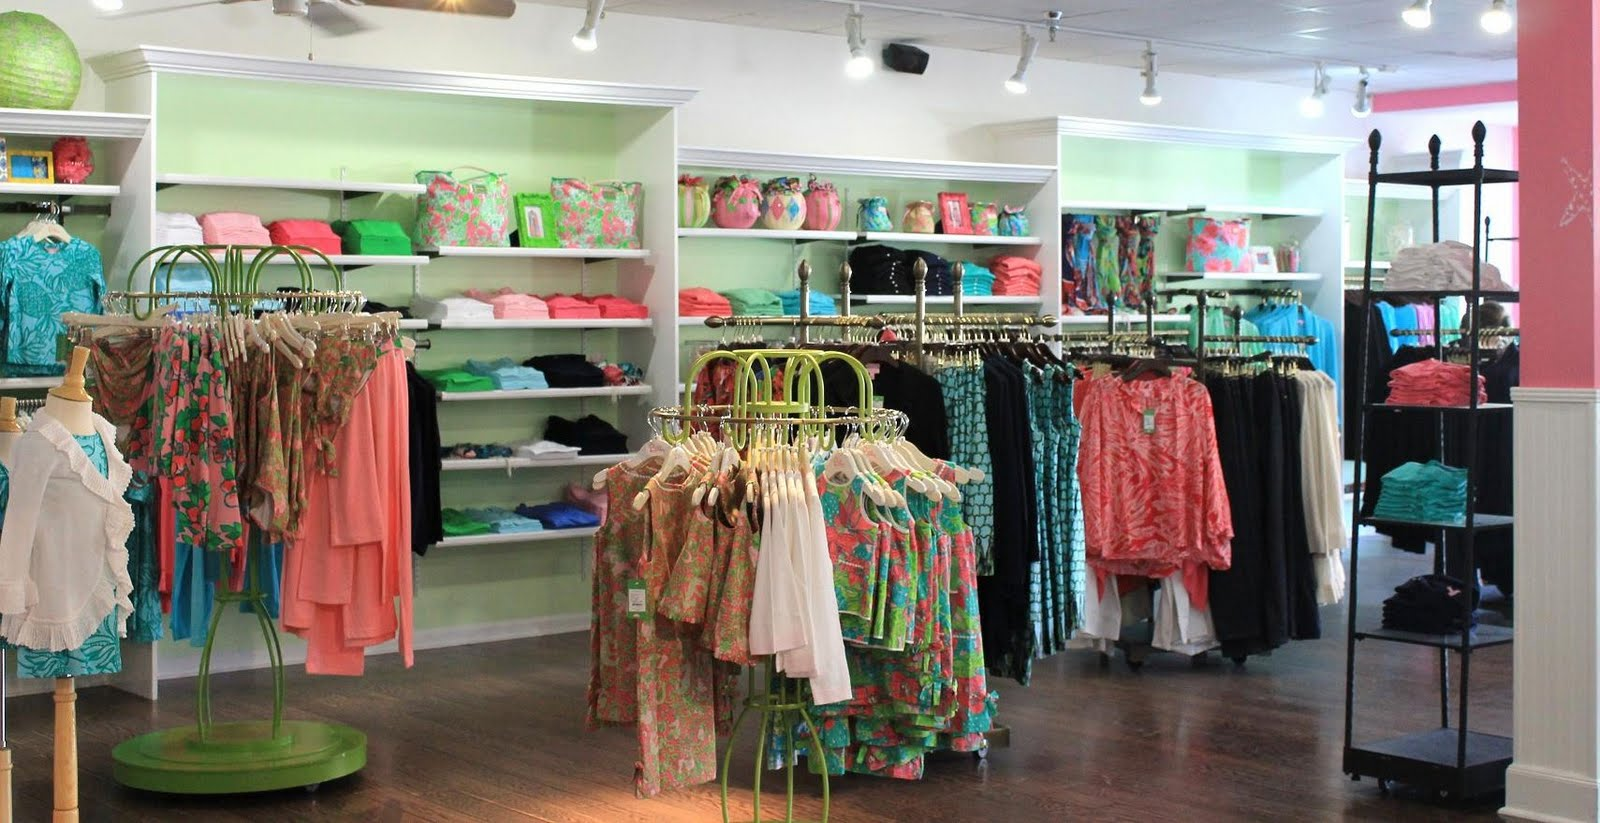 C Orrico Has The Latest Collection From Lilly Pulitzer But Also Boasts A Wonderful Array Of Other Preppy Brands My Favorites Include Adorable Tunics